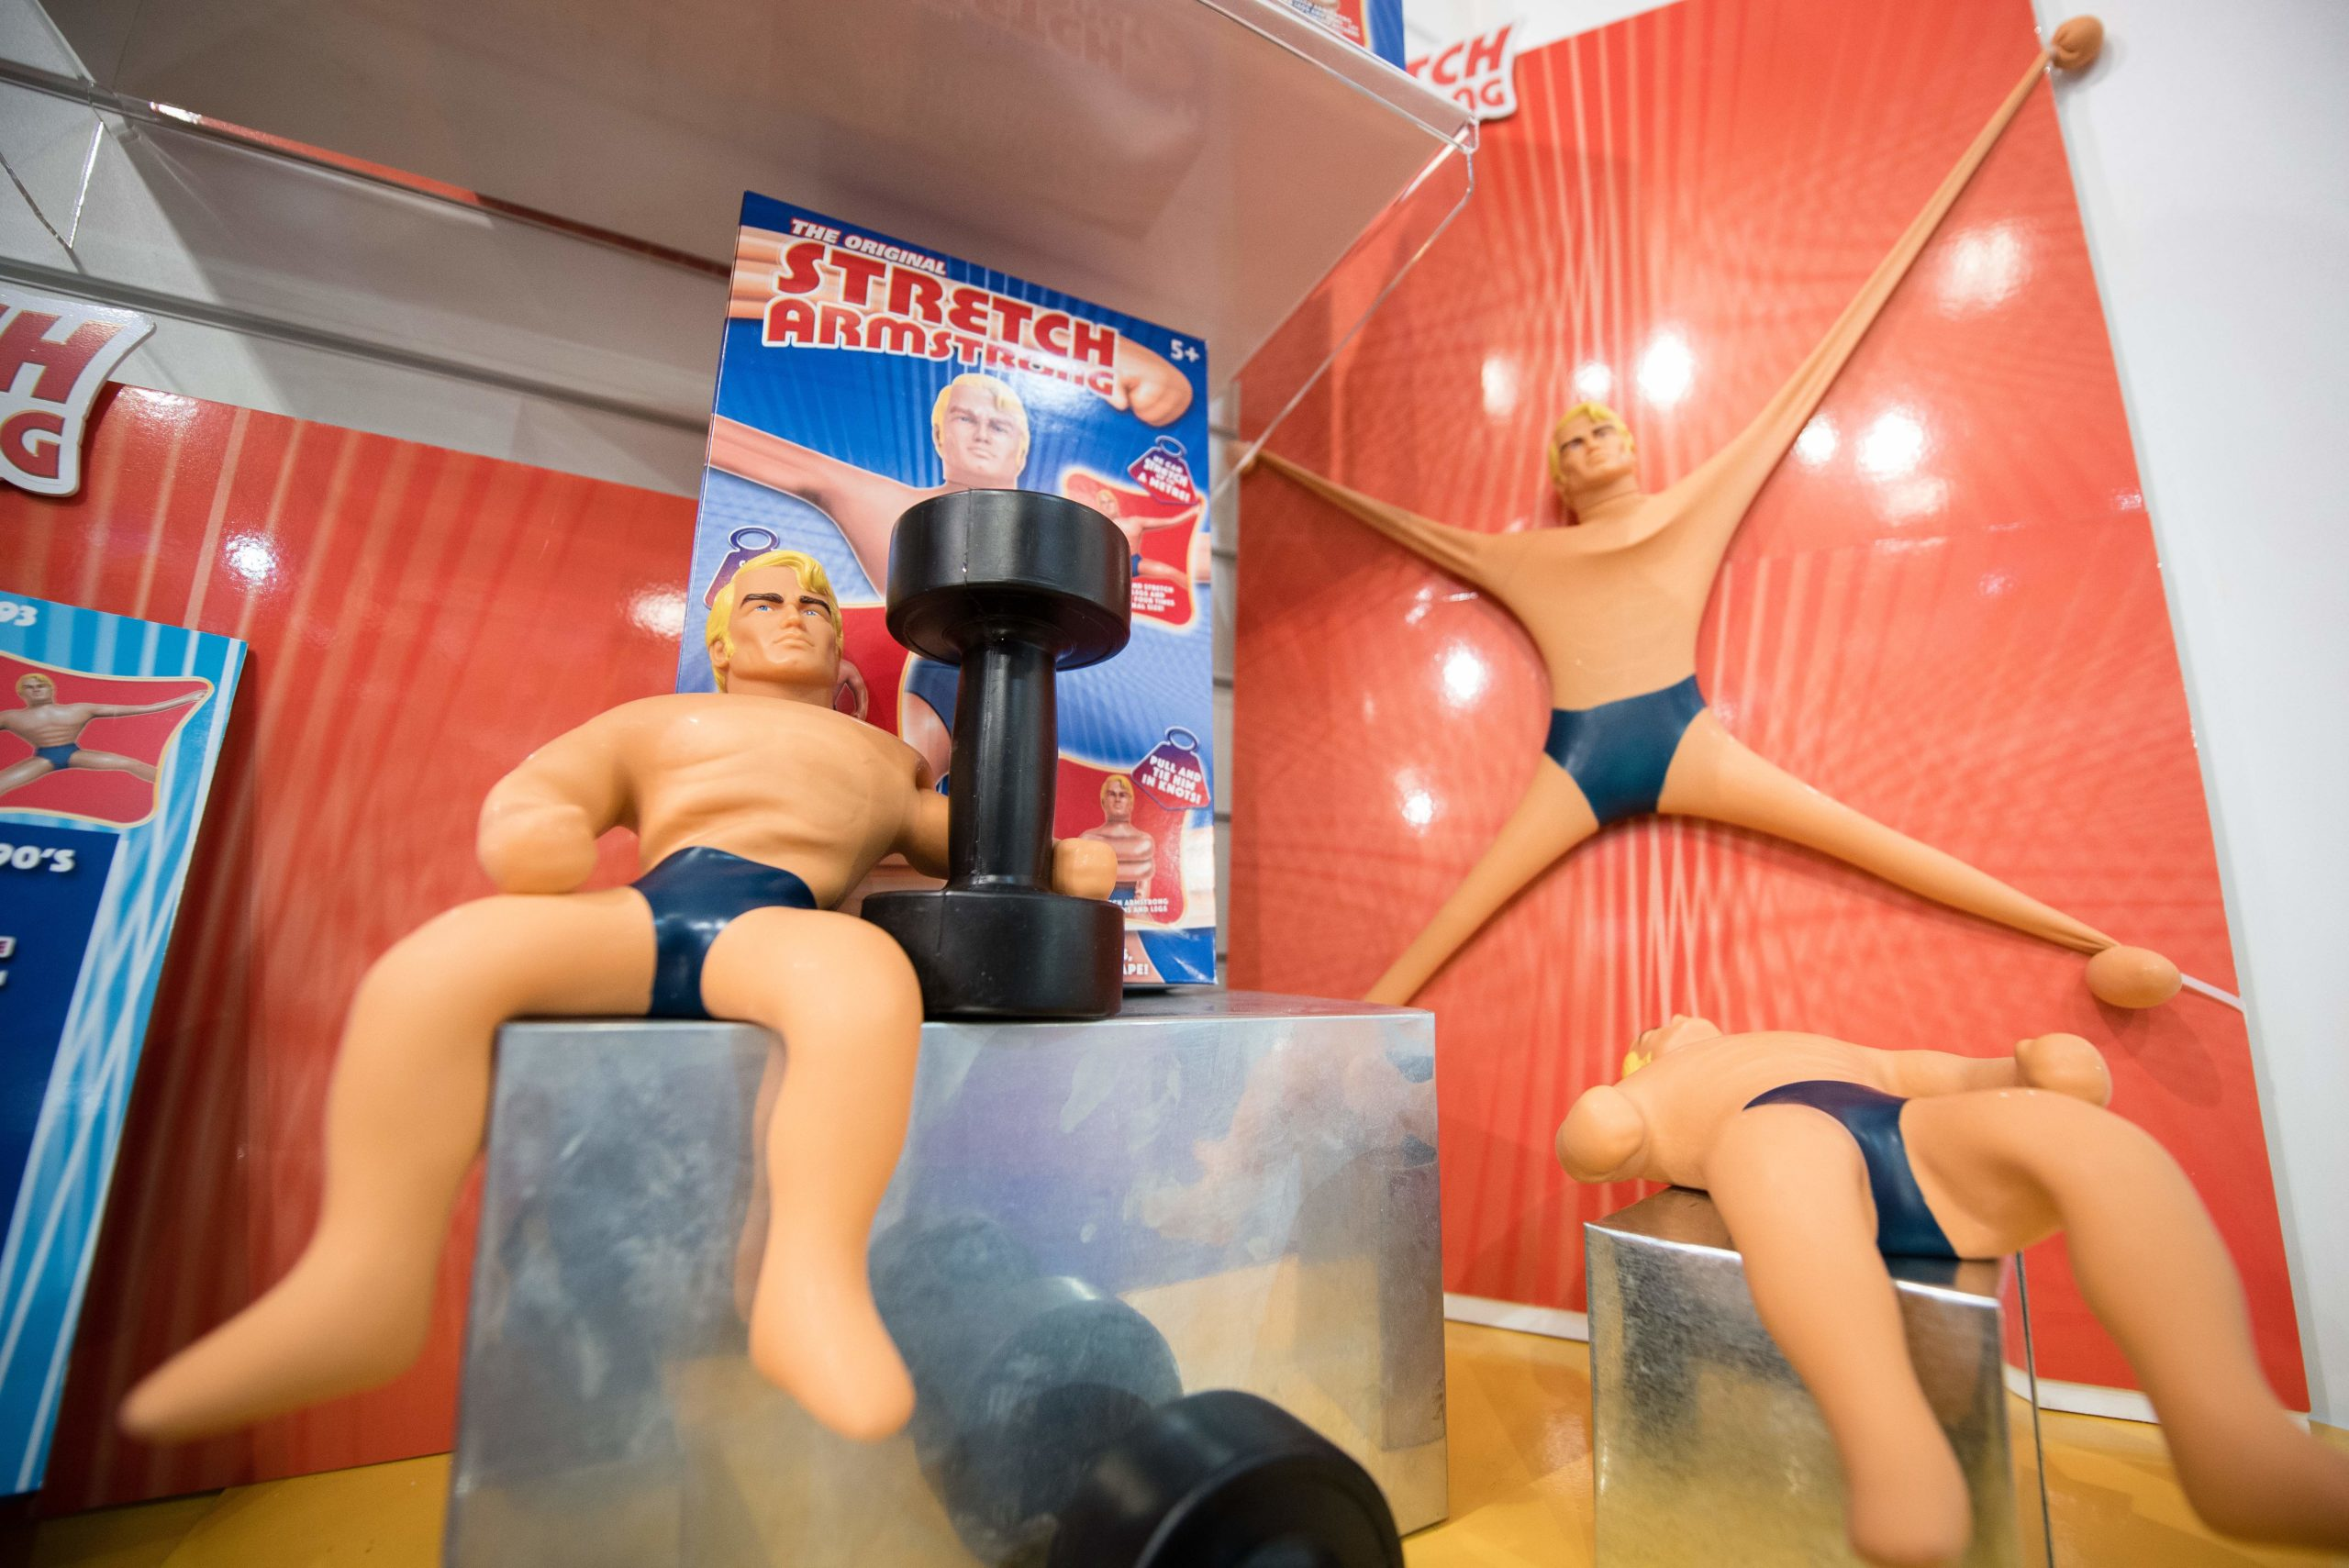 Most Popular Toys of the 90s: Stretch Armstrong